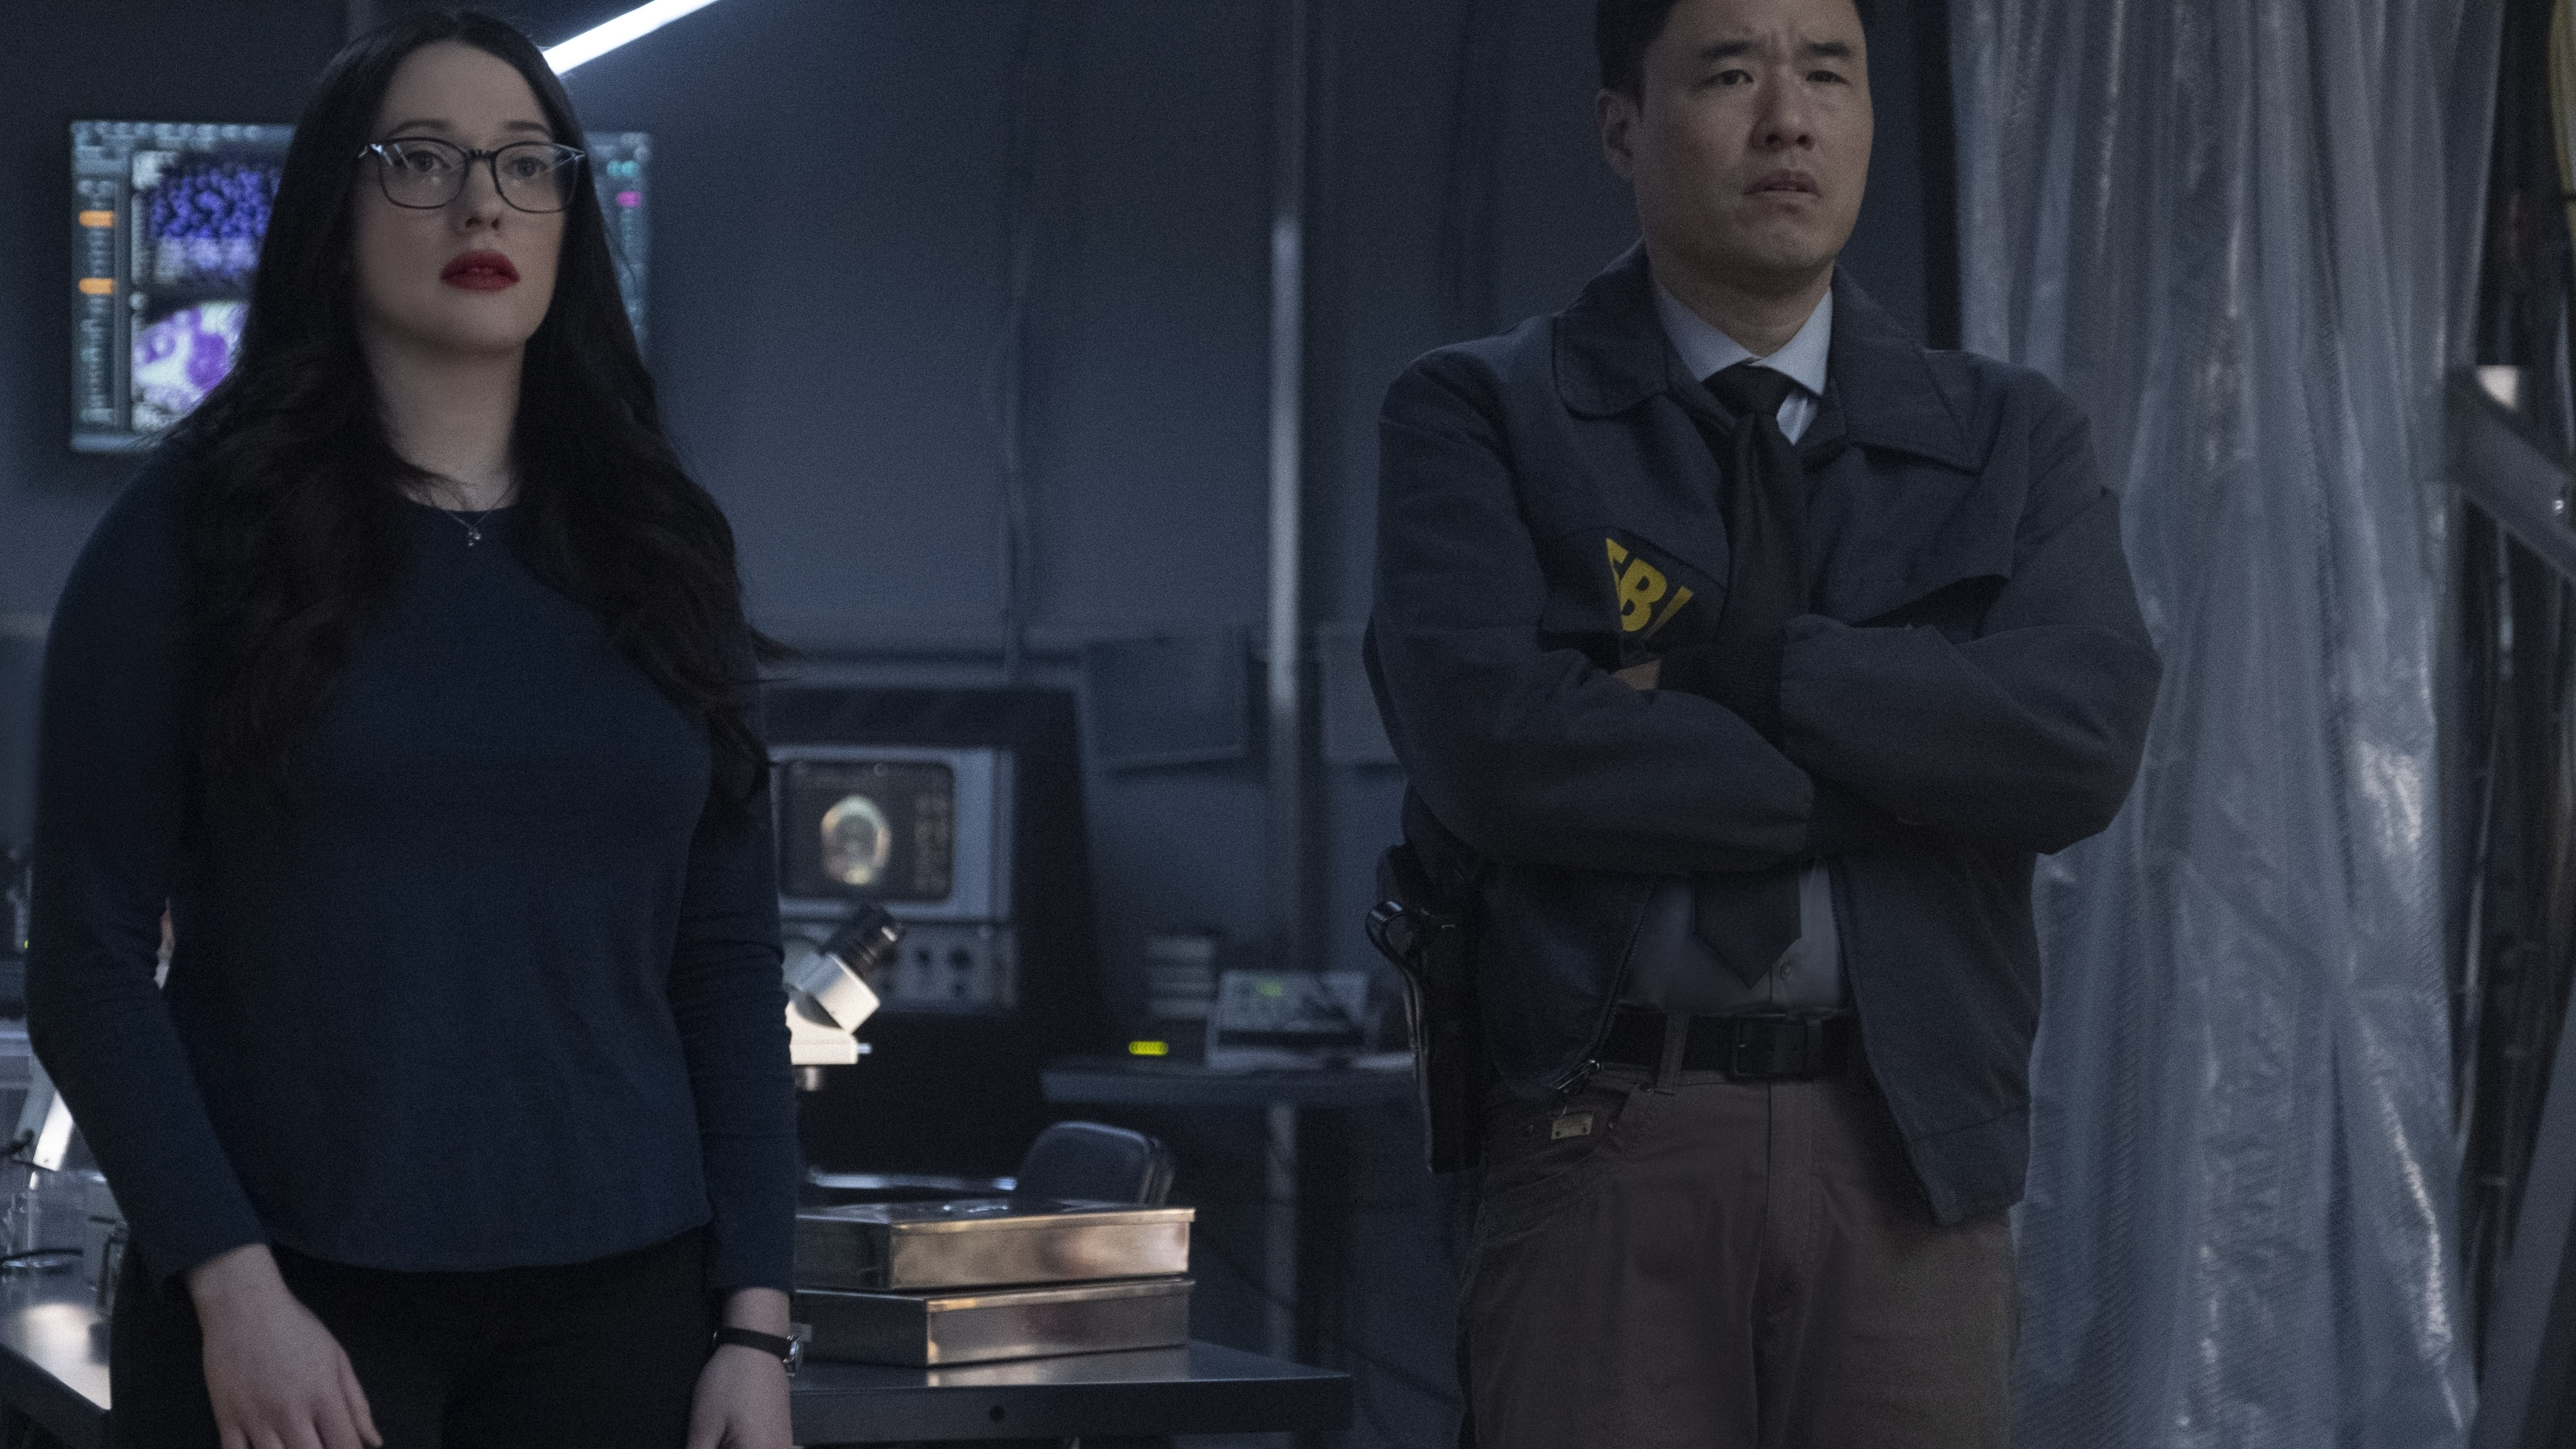 (L-R): Kat Dennings as Darcy Lewis and Randall Park as Jimmy Woo in Marvel Studios' WANDAVISION exclusively on Disney+. Photo by Chuck Zlotnick. ©Marvel Studios 2021. All Rights Reserved.